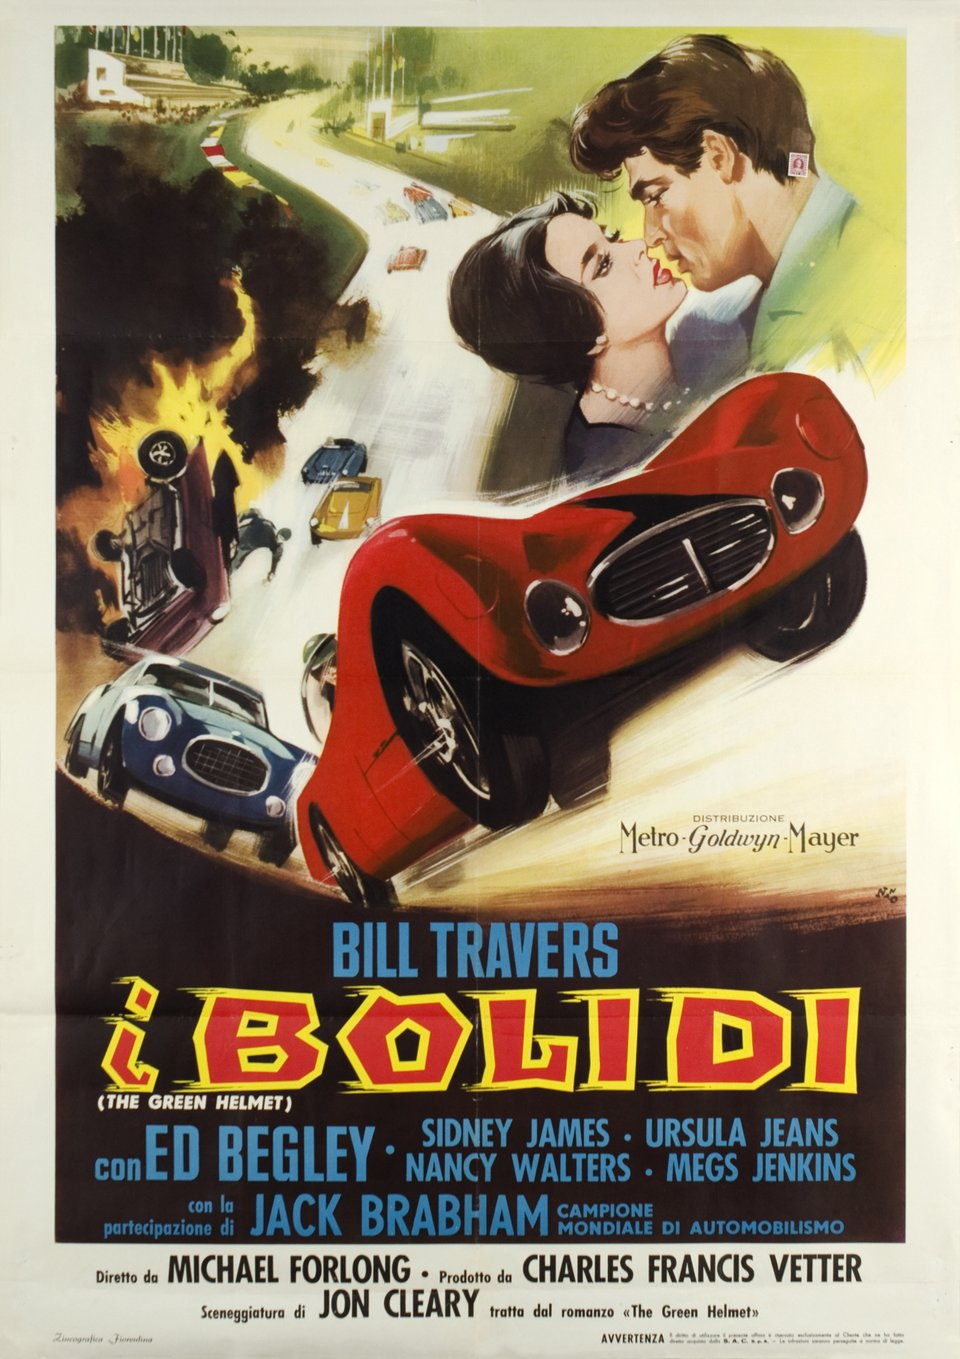 """I Bolidi"" (the green helmet), movie with Bill Travers – Affiche ancienne – ANONYMOUS – 1961"